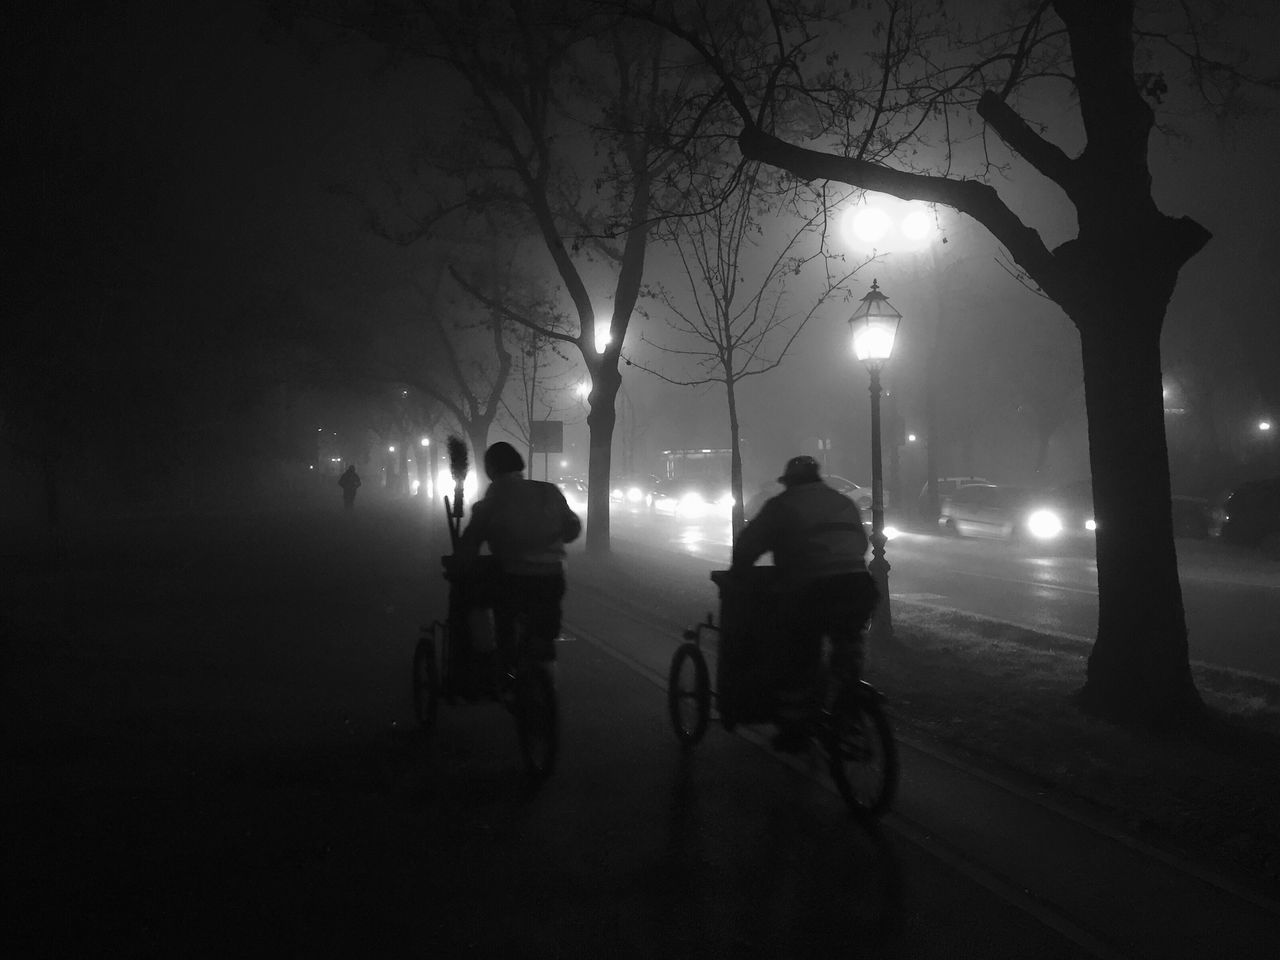 "Garbagemen driving through extensive ""Carpenter style"" night fog in Zagreb, Marulicev square, Croatia, Dec 9, 2016. Marulicev Square Zagreb Croatia Fog Foggy Night Fog Night Garbageman Waste Collector Bicycle Night Lights Transportation Silhouette Bare Tree Carpenter Dramatic Visibility Adapted To The City"